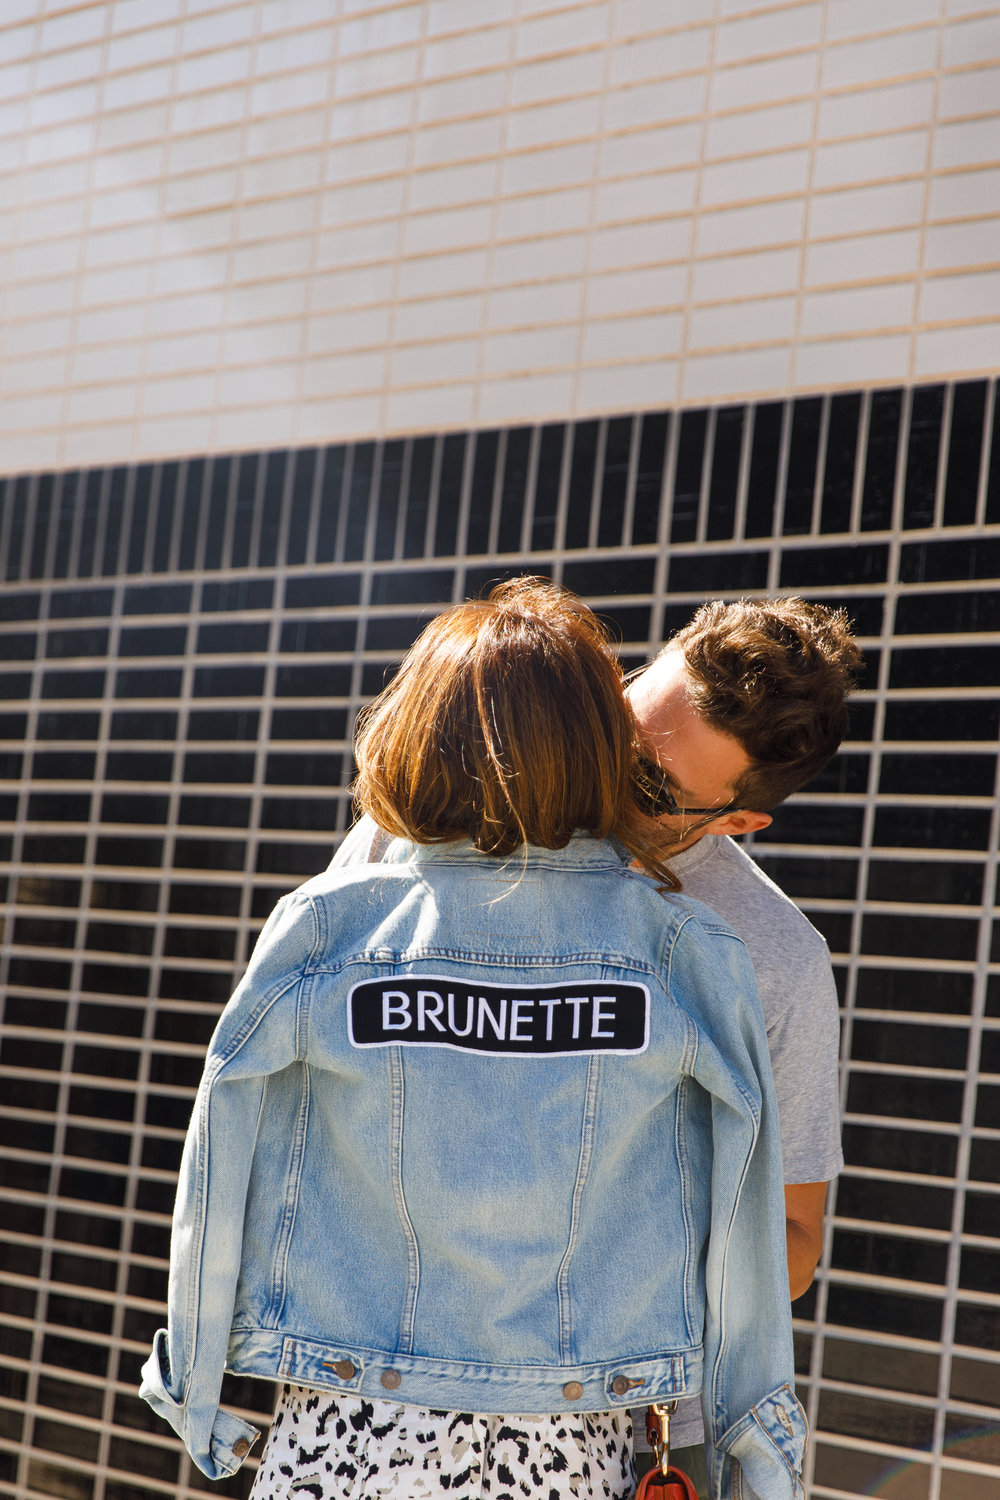 brunette the label, the best denim jacket, patched jackets, everyday pursuits